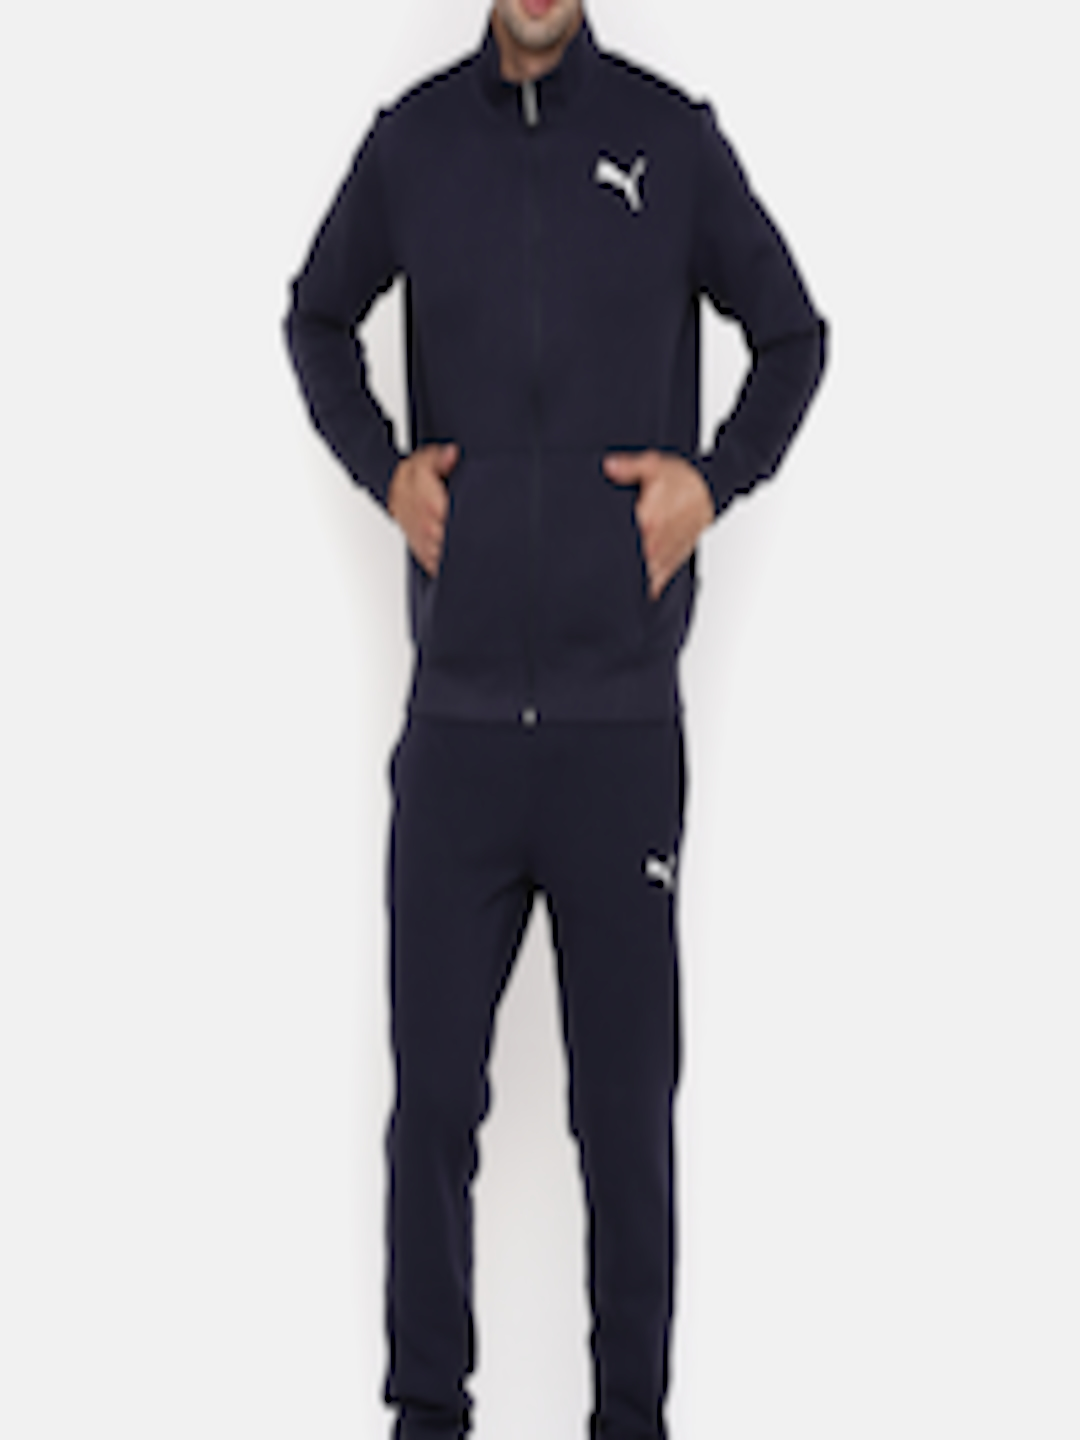 a0a946b393f2 Buy Puma Navy Style Good Sweat Suit Cl Track Suit - Tracksuits for Men  7143779